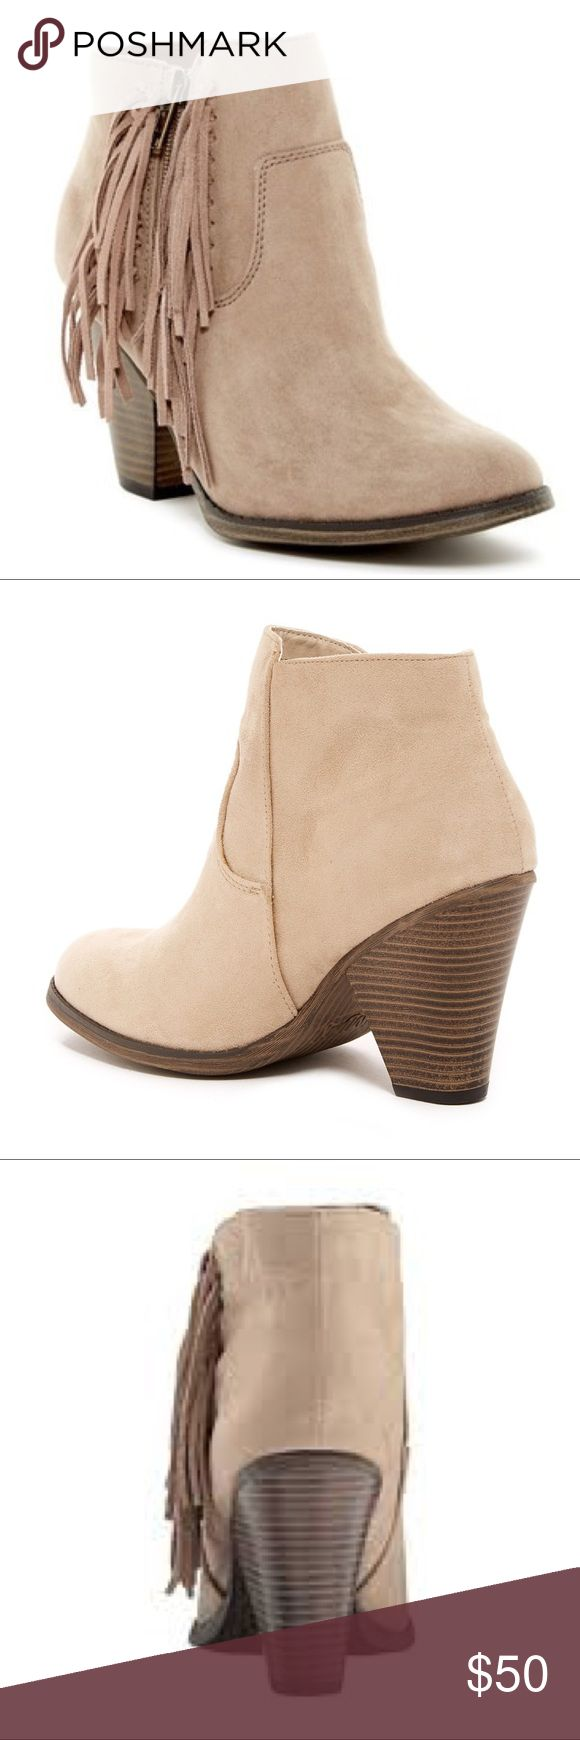 "Suede Fringe Stacked Chunky Heel Bootie Color is Sand (the light color) Western-inspired side fringe detail completes a soft textured bootie lifted on a wooden heel.  Sizing: True to size. Standard width   - Round toe - Vegan suede with genuine suede fringe detail - Side zip closure - Stacked print chunky heel - Approx. 3.5"" shaft height, 9"" opening circumference - Approx. 3.5"" heel - Imported Shoes Ankle Boots & Booties"